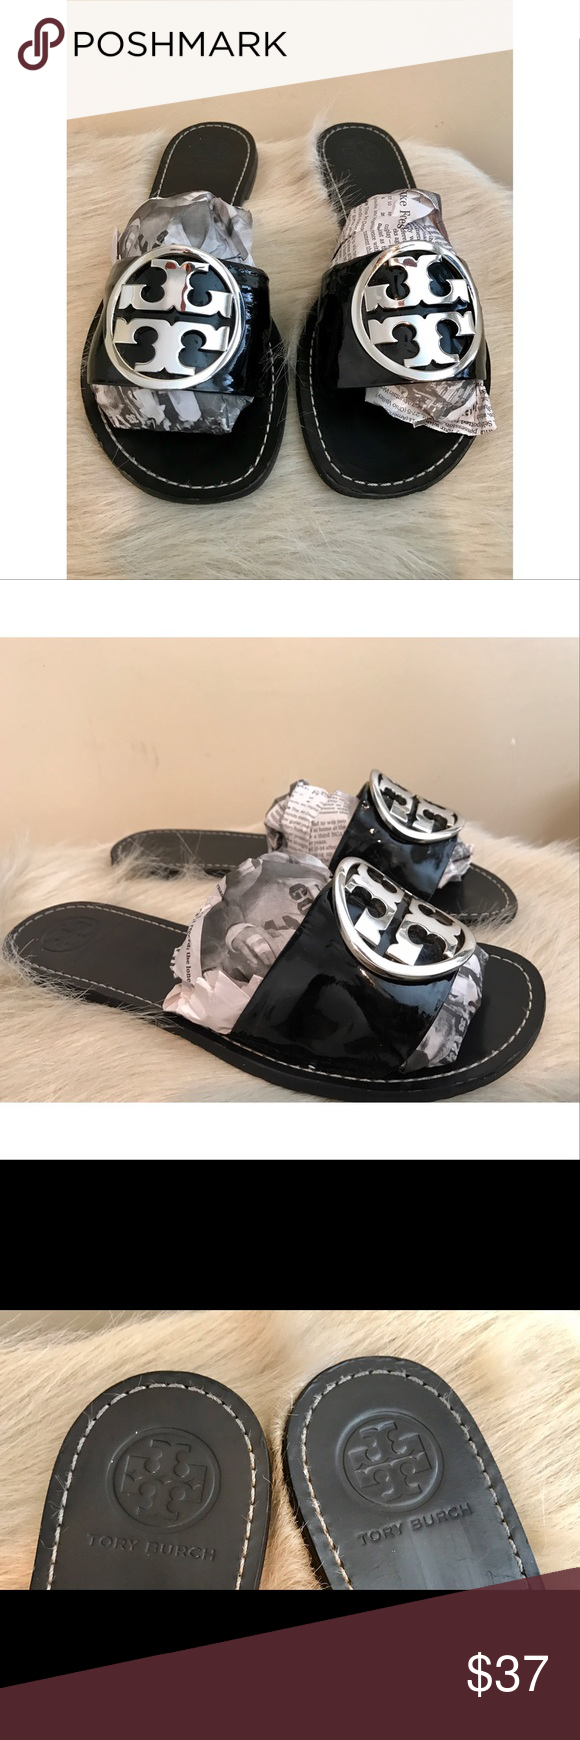 Tory Burch Black Patent Leather Slides....Sz 8 Very cute Slides......the size rubbed off but a size 8.....Fast shipping....Enjoy Tory Burch Shoes Sandals